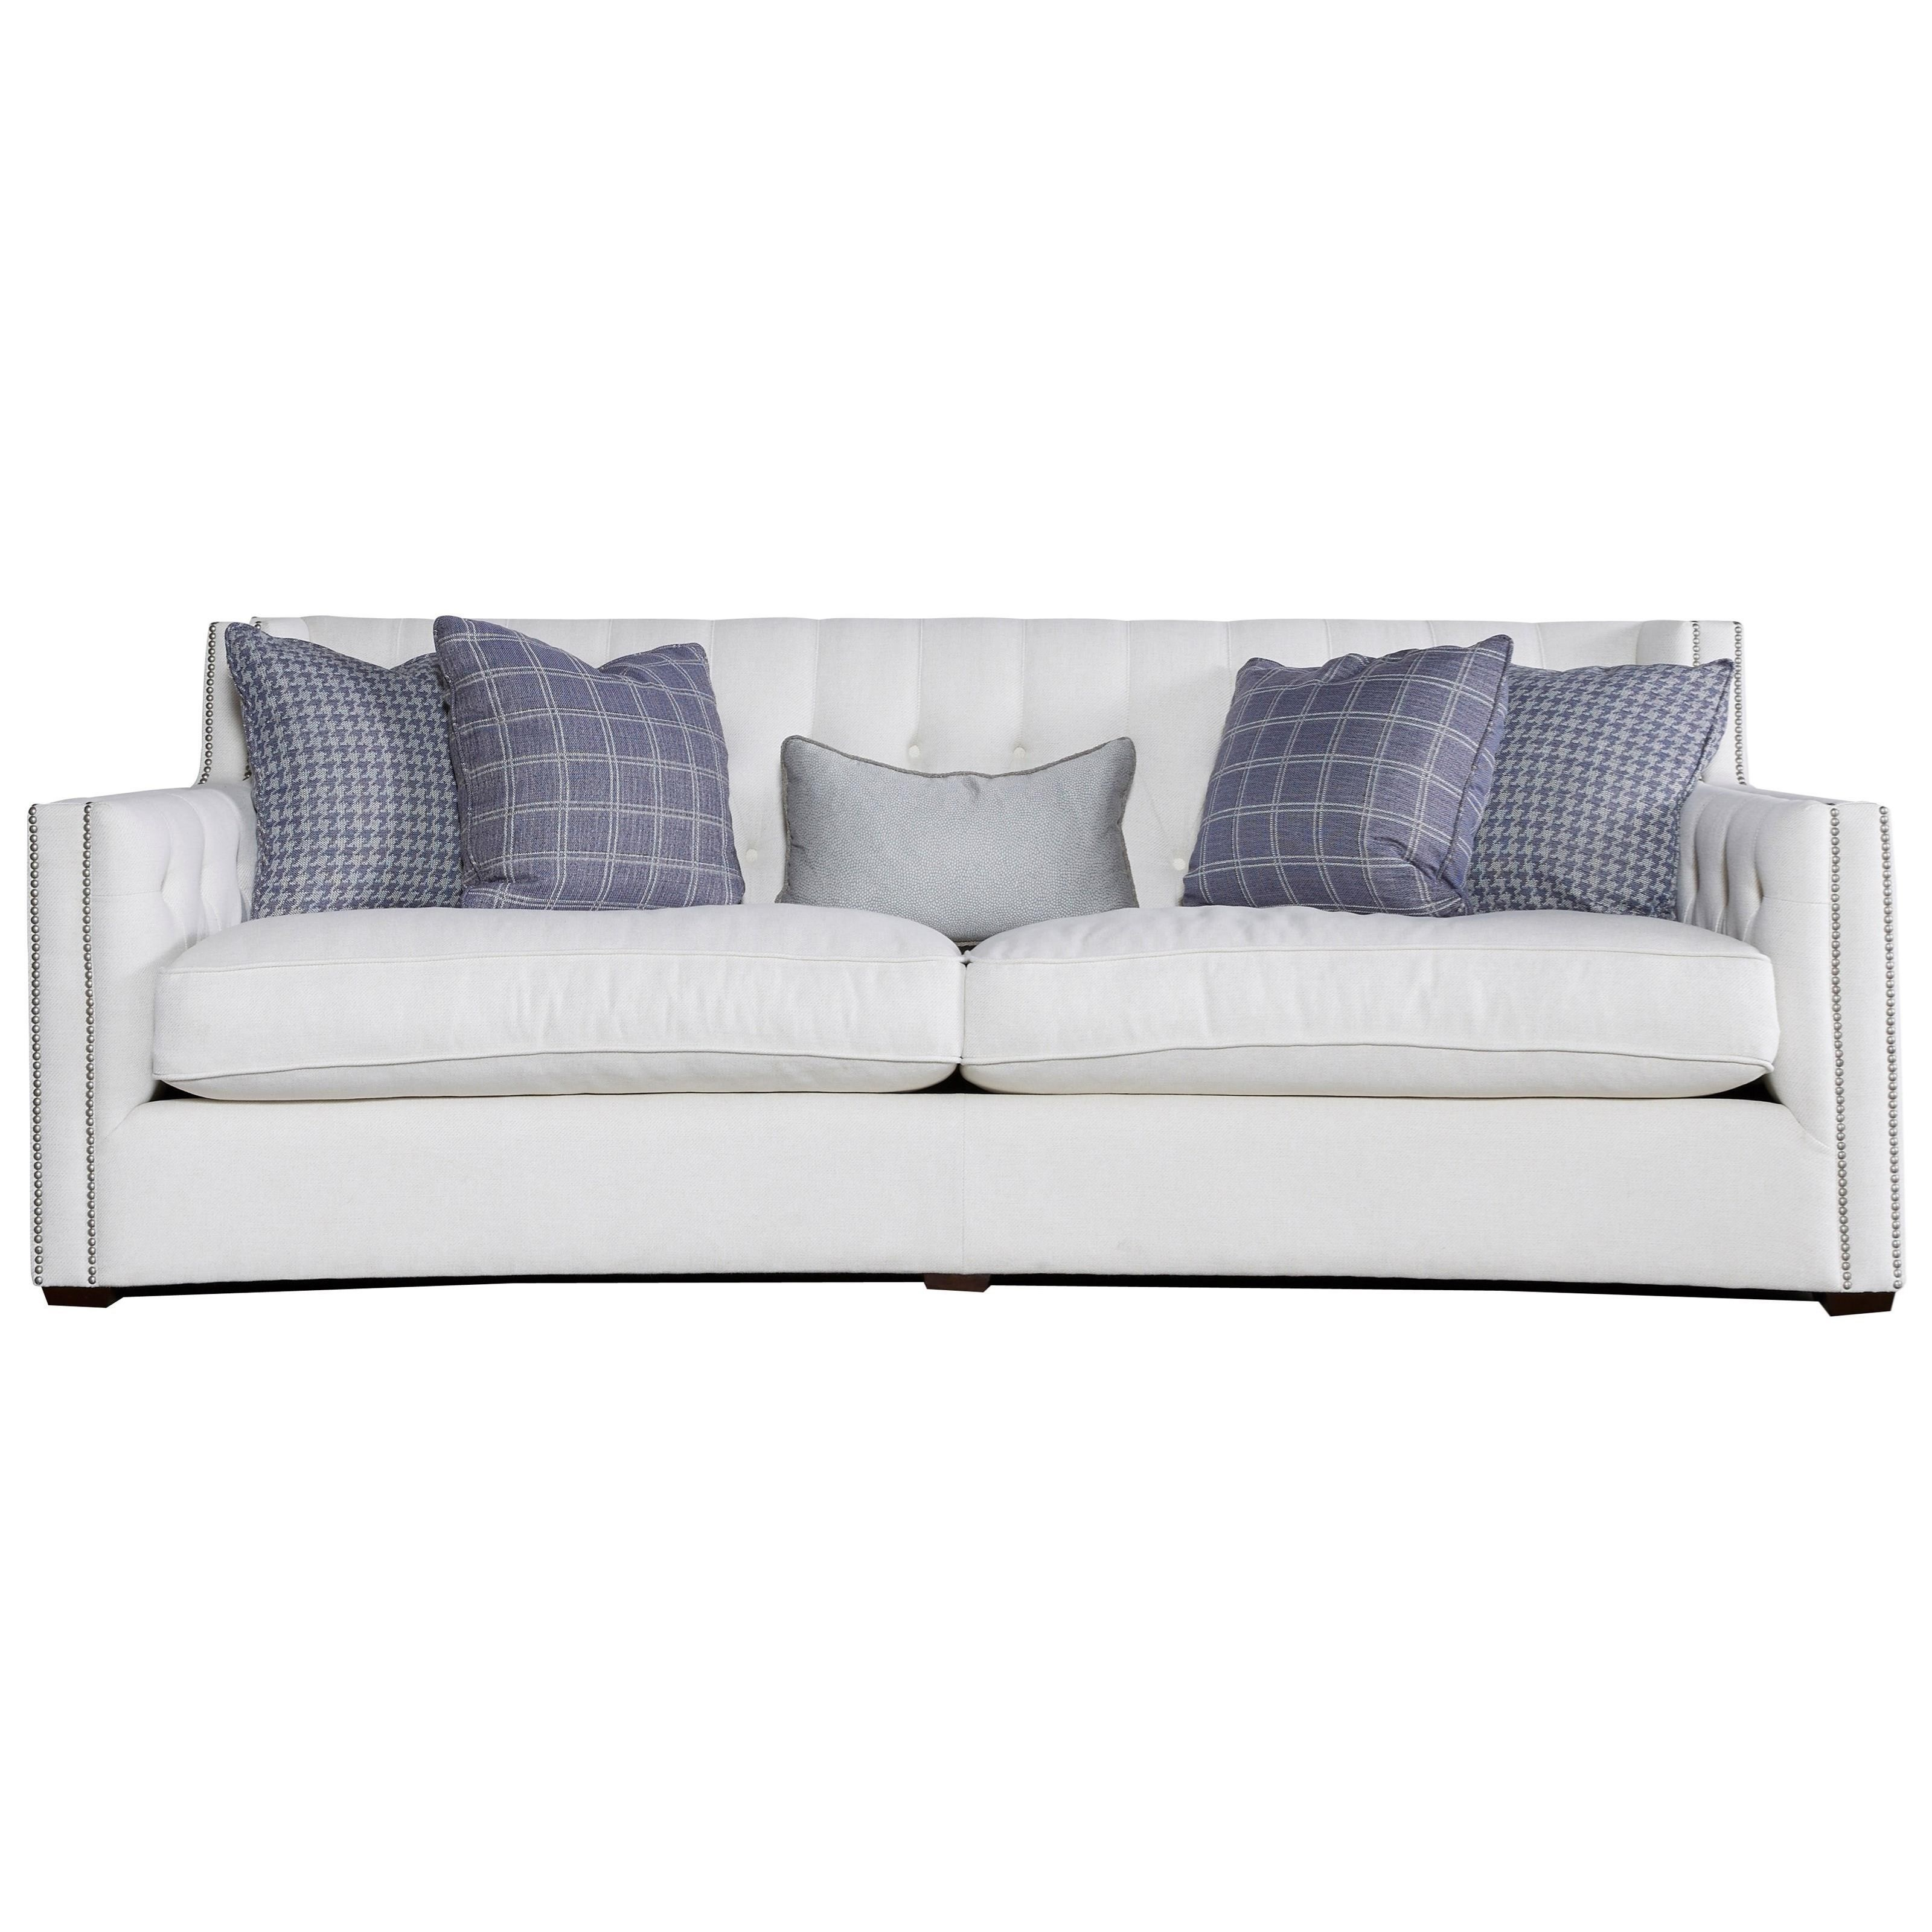 contemporary sofa with wood trim paintings abstract universal tessa track arms and nail